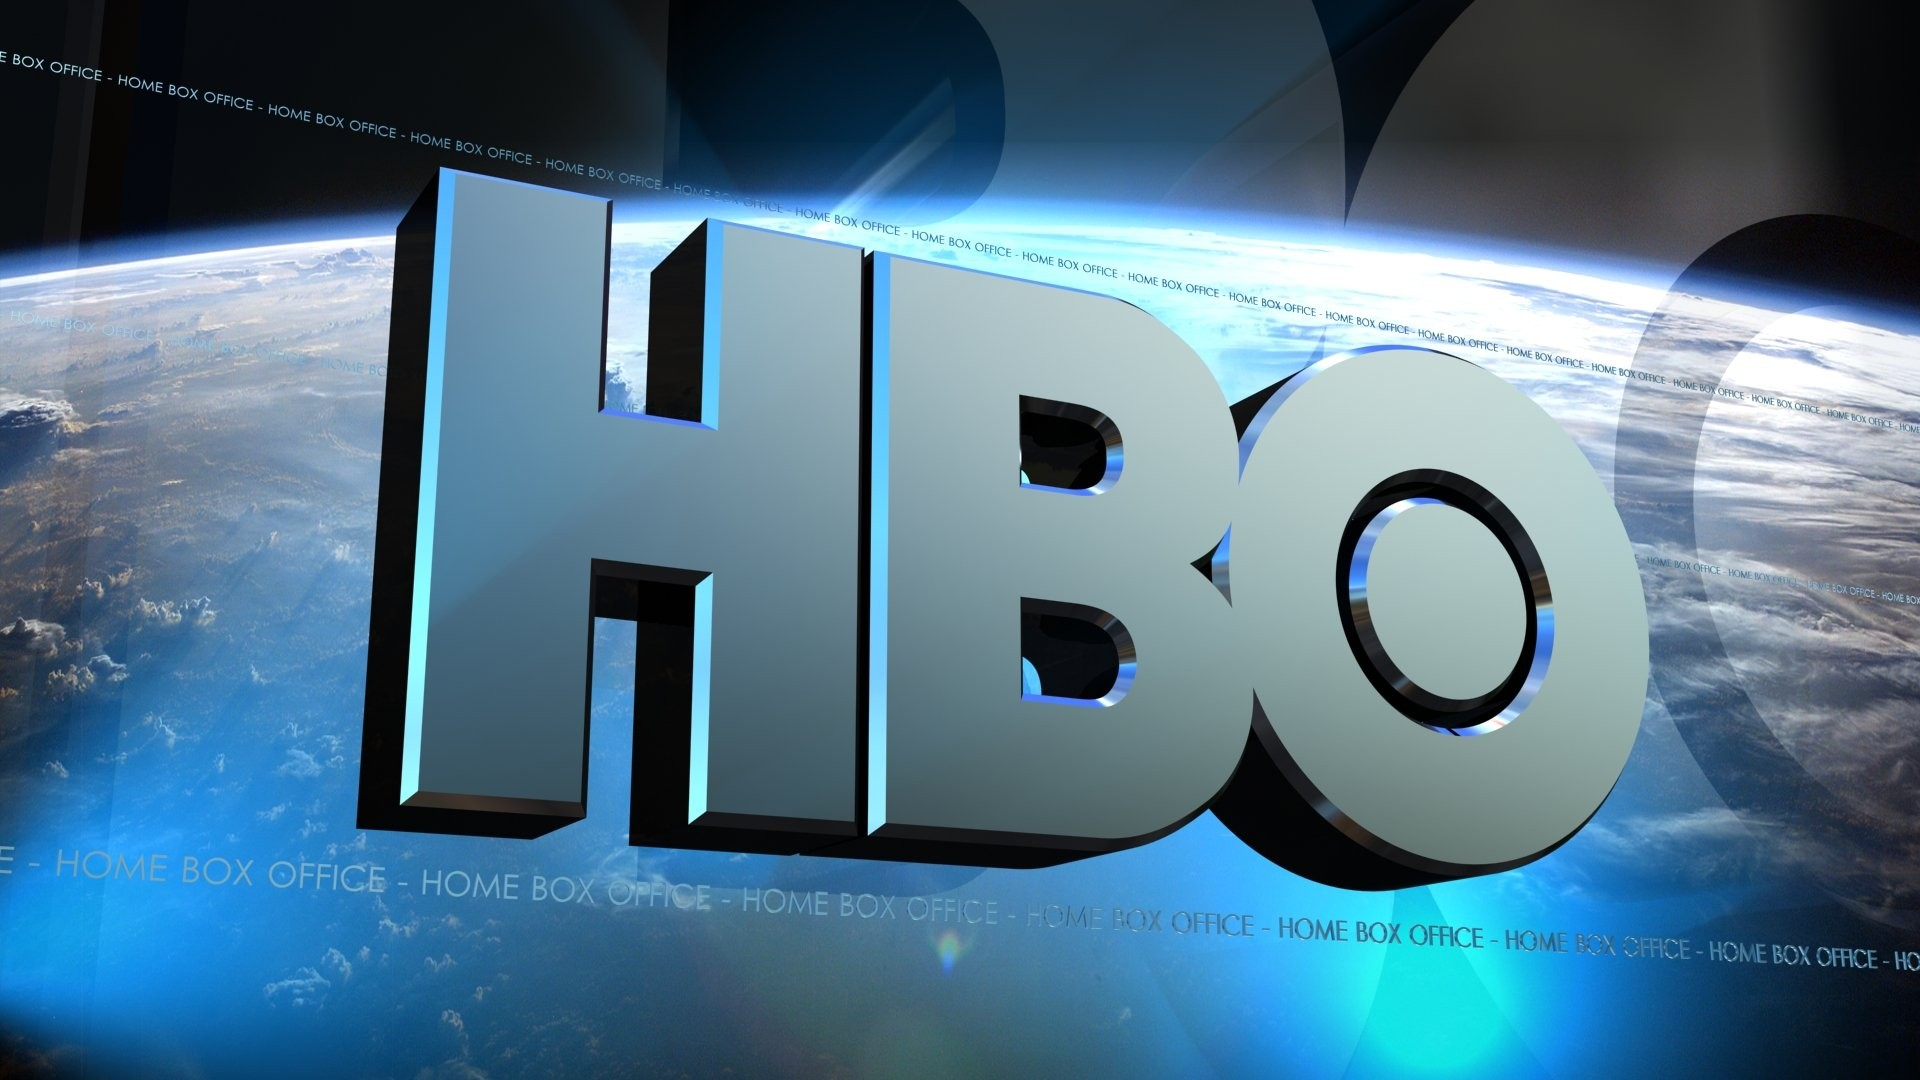 HBO Finally Killed Cable